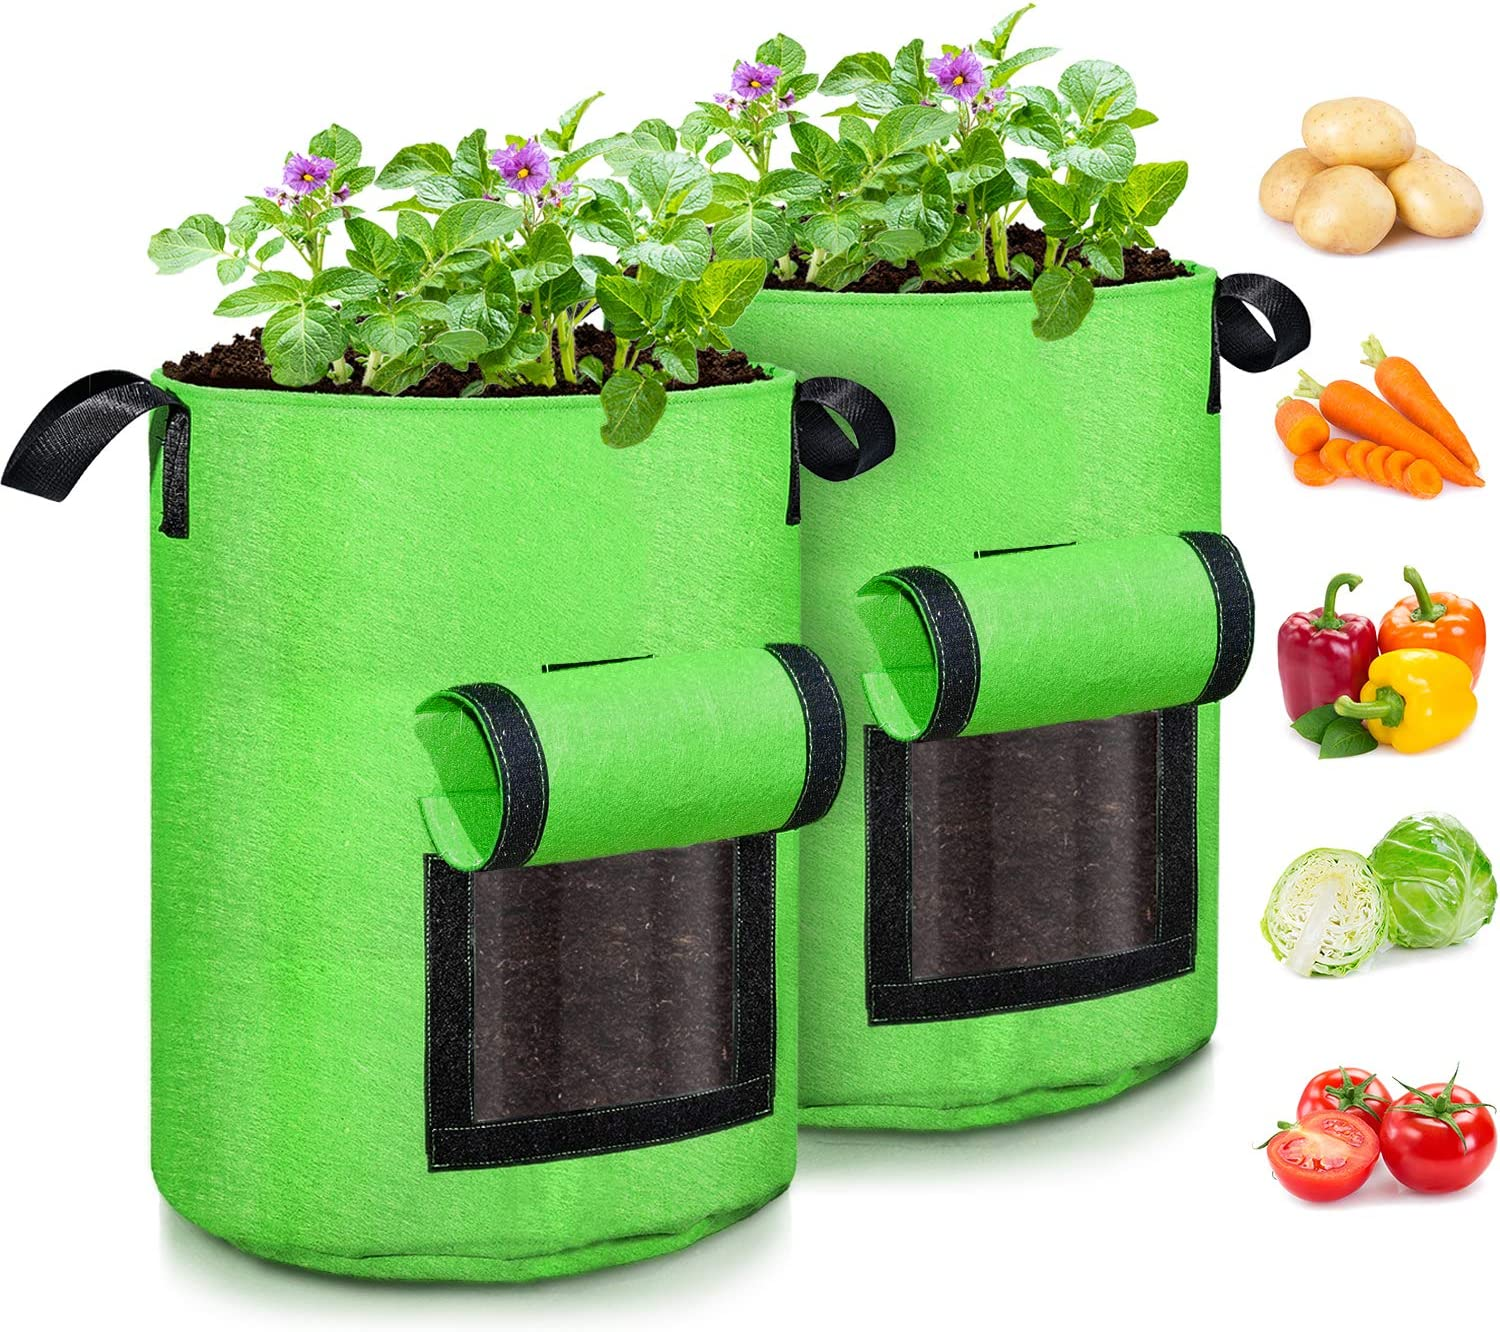 Carrot BSZ Potato Grow Bag,//Vegetable Grow Plant Bags with Handles and Access Flap for Vegetables Home Grow Bag,3 Pack Onion Fruits